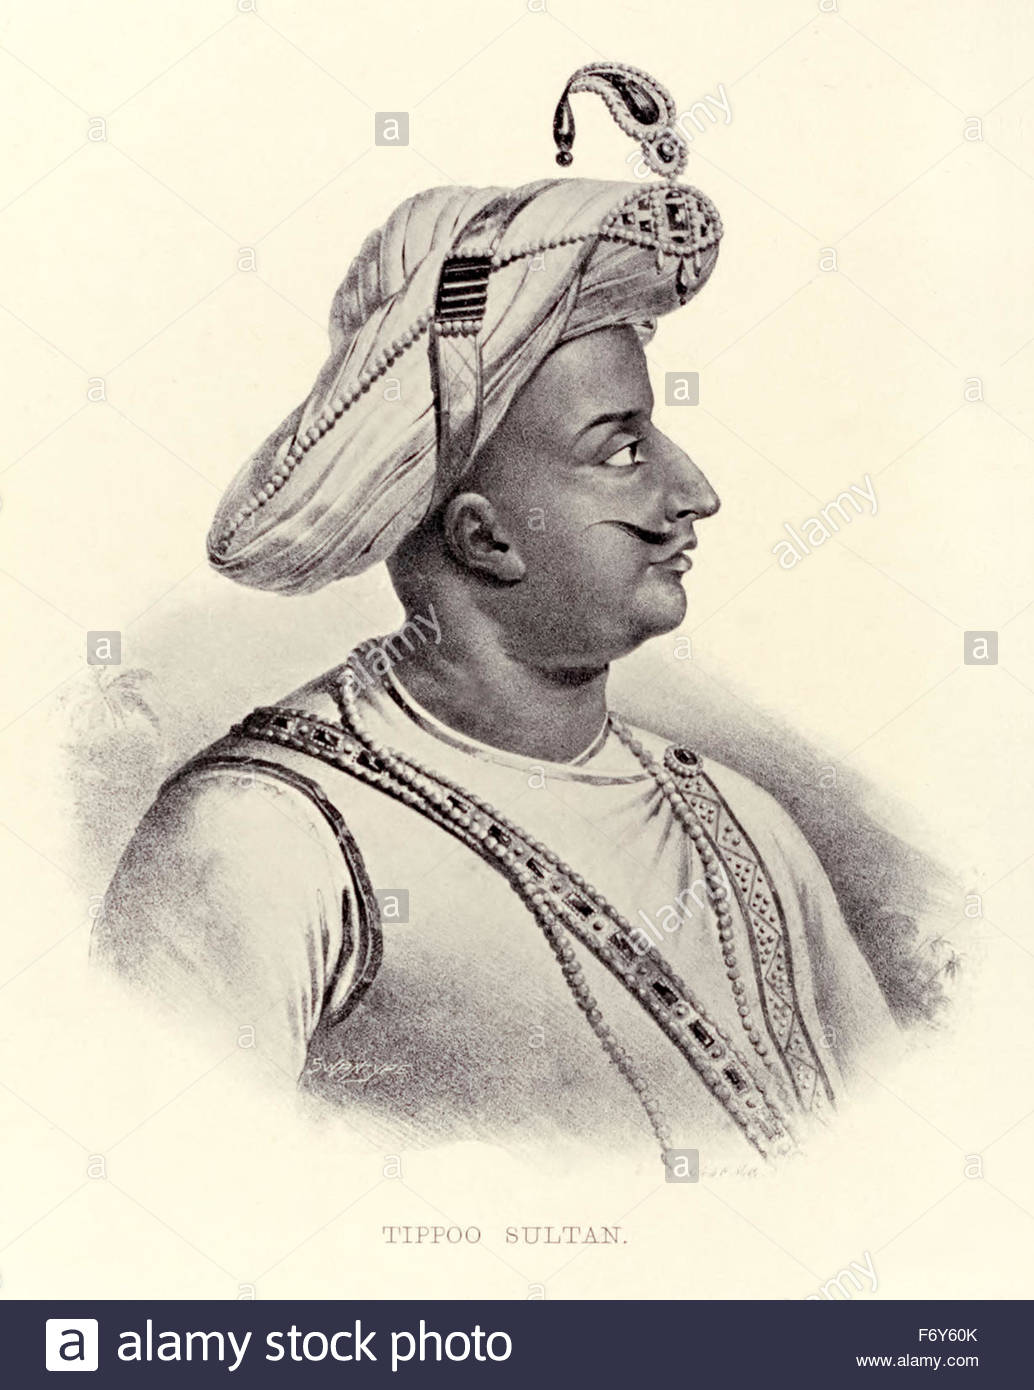 Tipu Sultan – A Hero or Villain